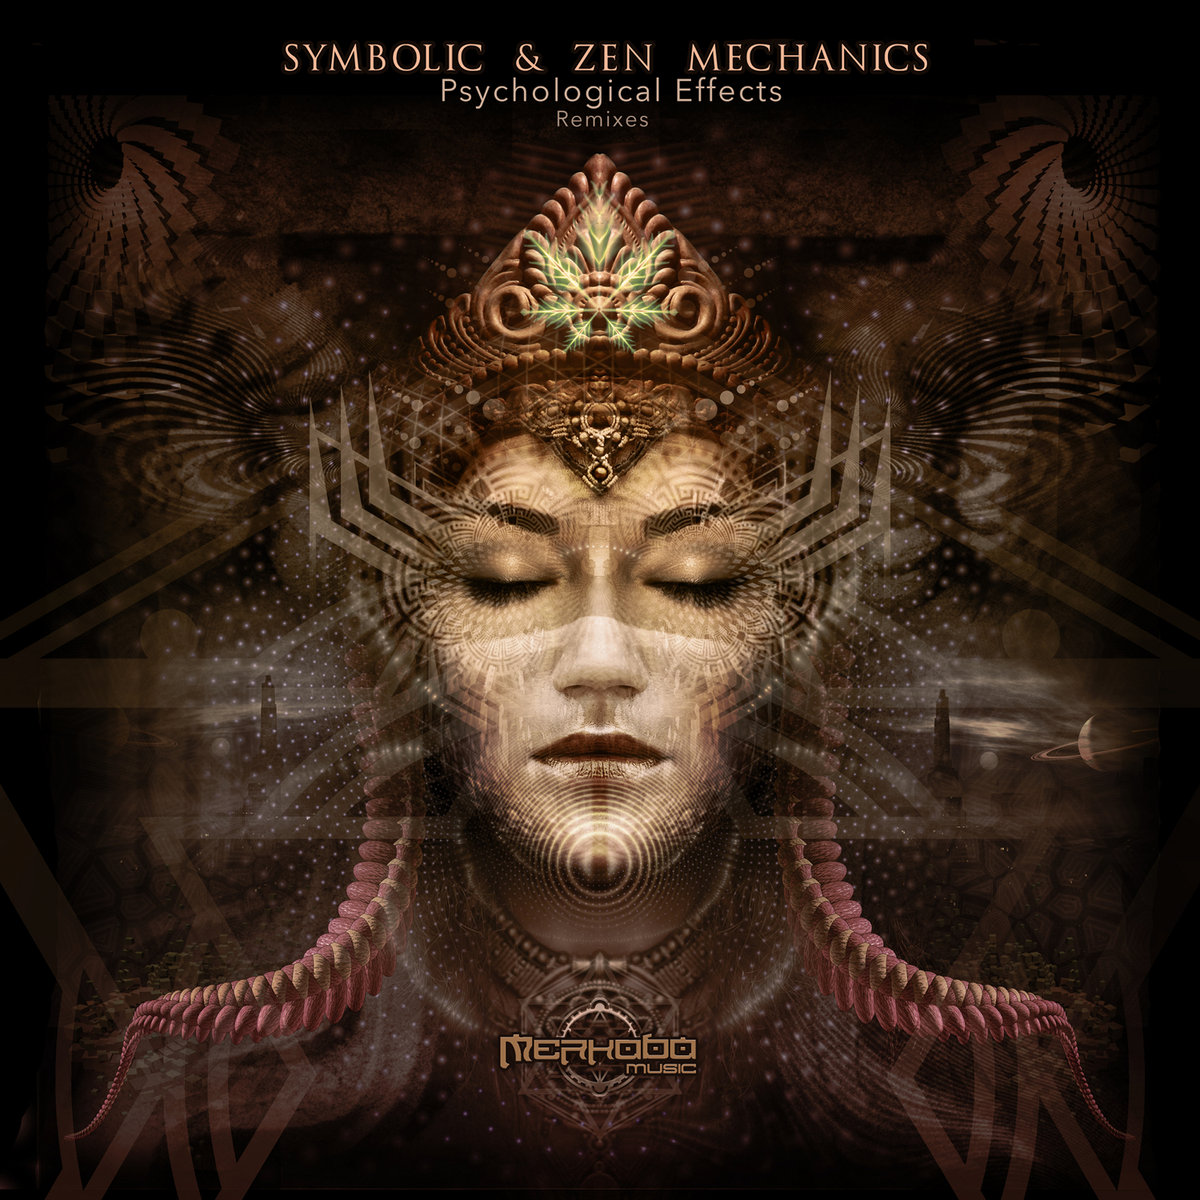 Symbolic & Zen Mechanics - Psychological Effects (Kaya Project Remix) @ 'Psychological Effects - Remixes' album (electronic, future bass)